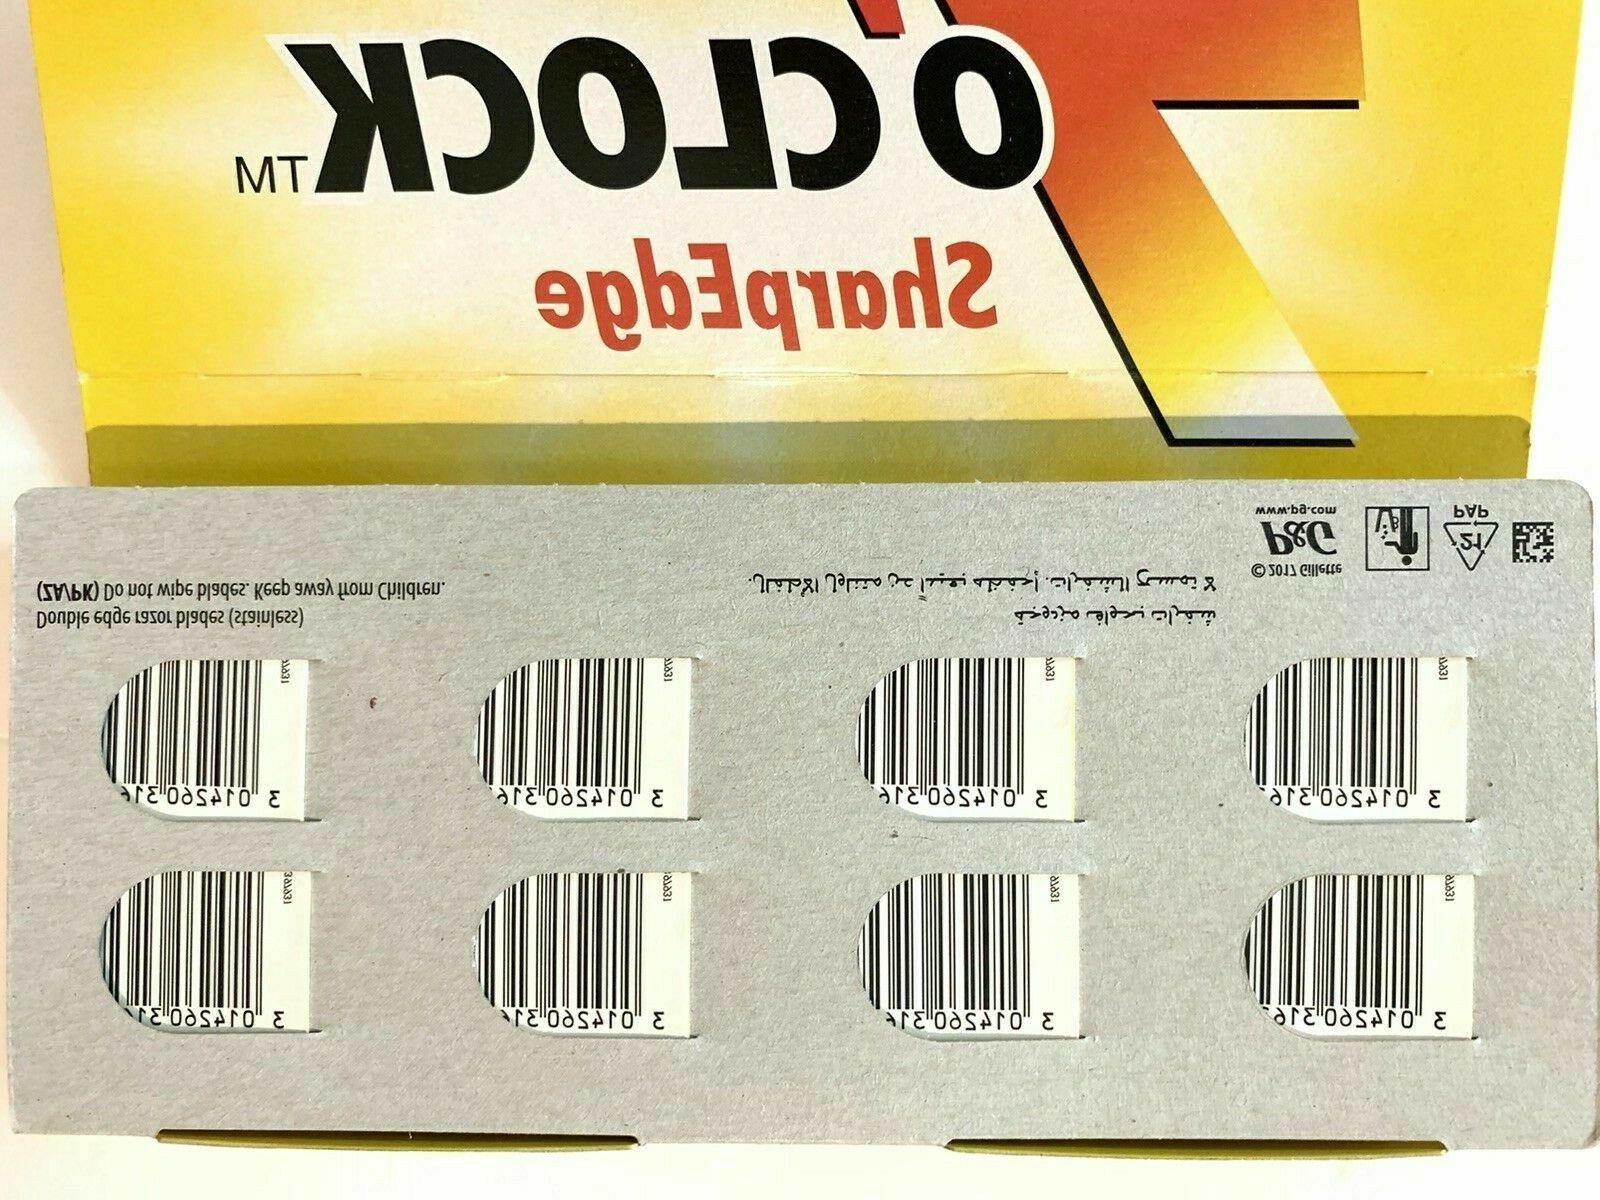 50 count Yellow Sharp Edge Double Edge Safety